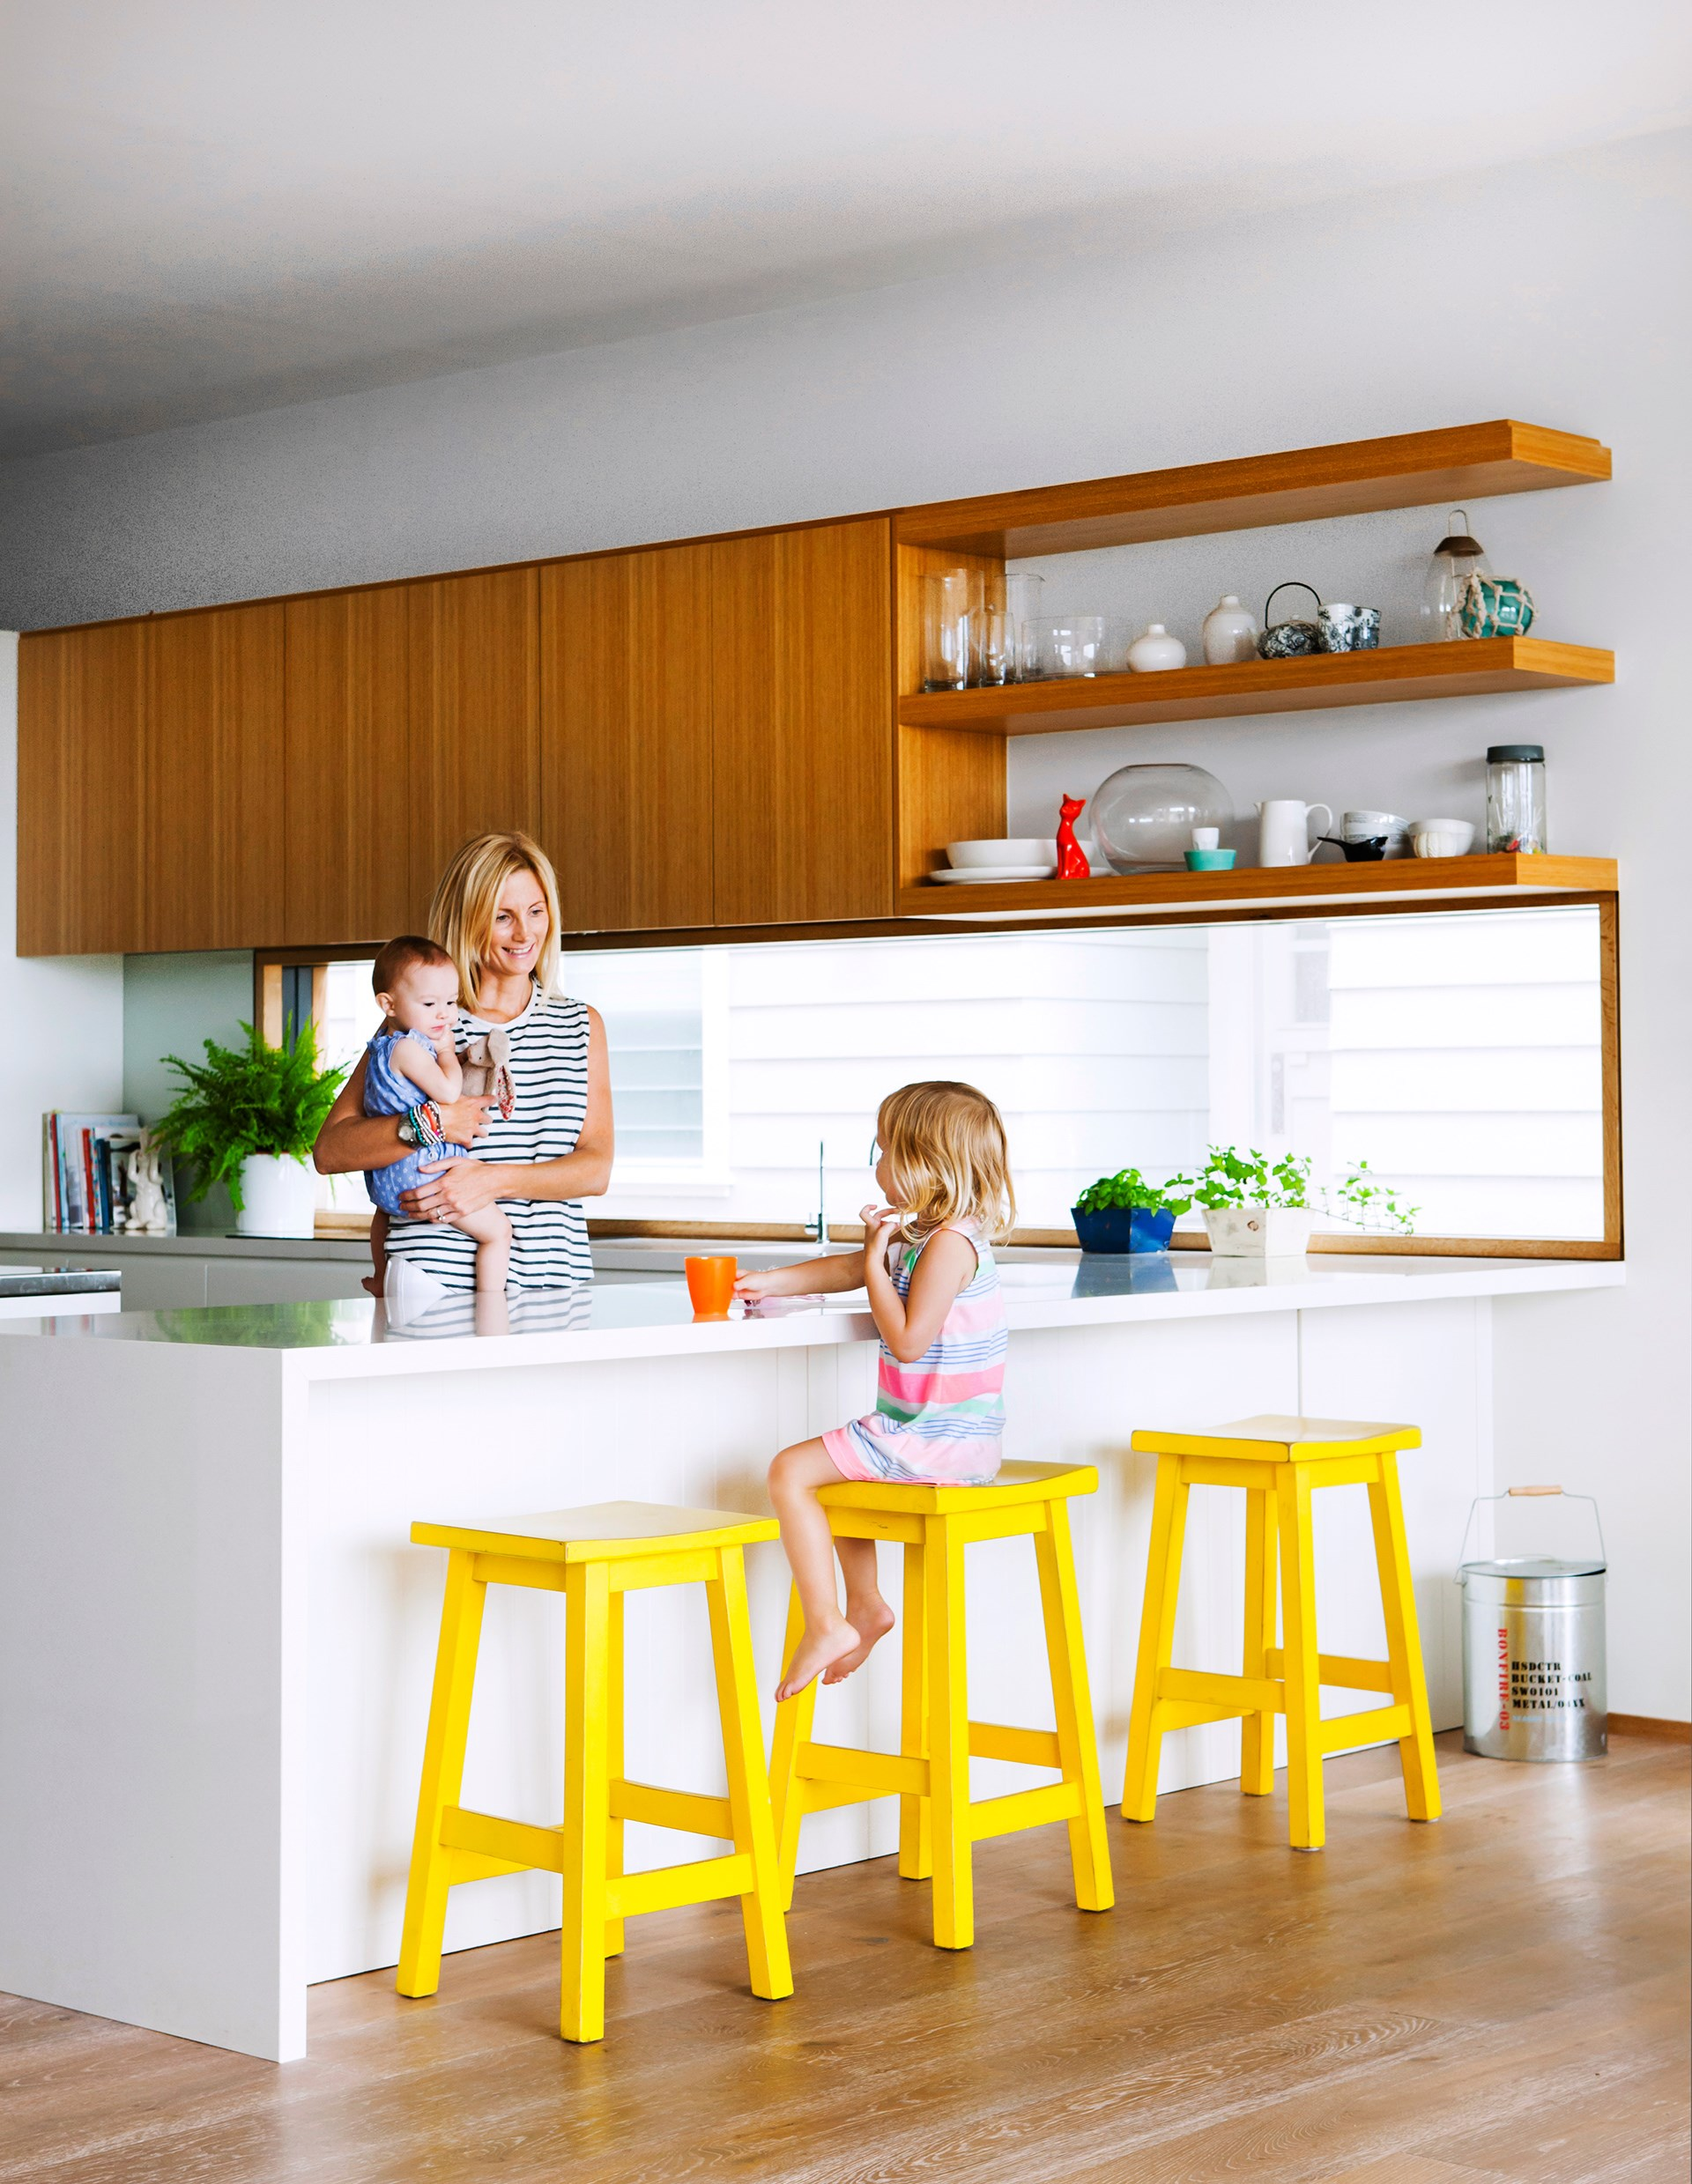 With five kids living in this [Sydney Northern Beaches home](http://www.homestolove.com.au/modern-family-beach-house-3695) the kitchen needed to be ultra-practical, but the addition of canary-yellow bar stools and sandblasted oak veneer joinery provides plenty of personality. *Photo: Maree Homer*